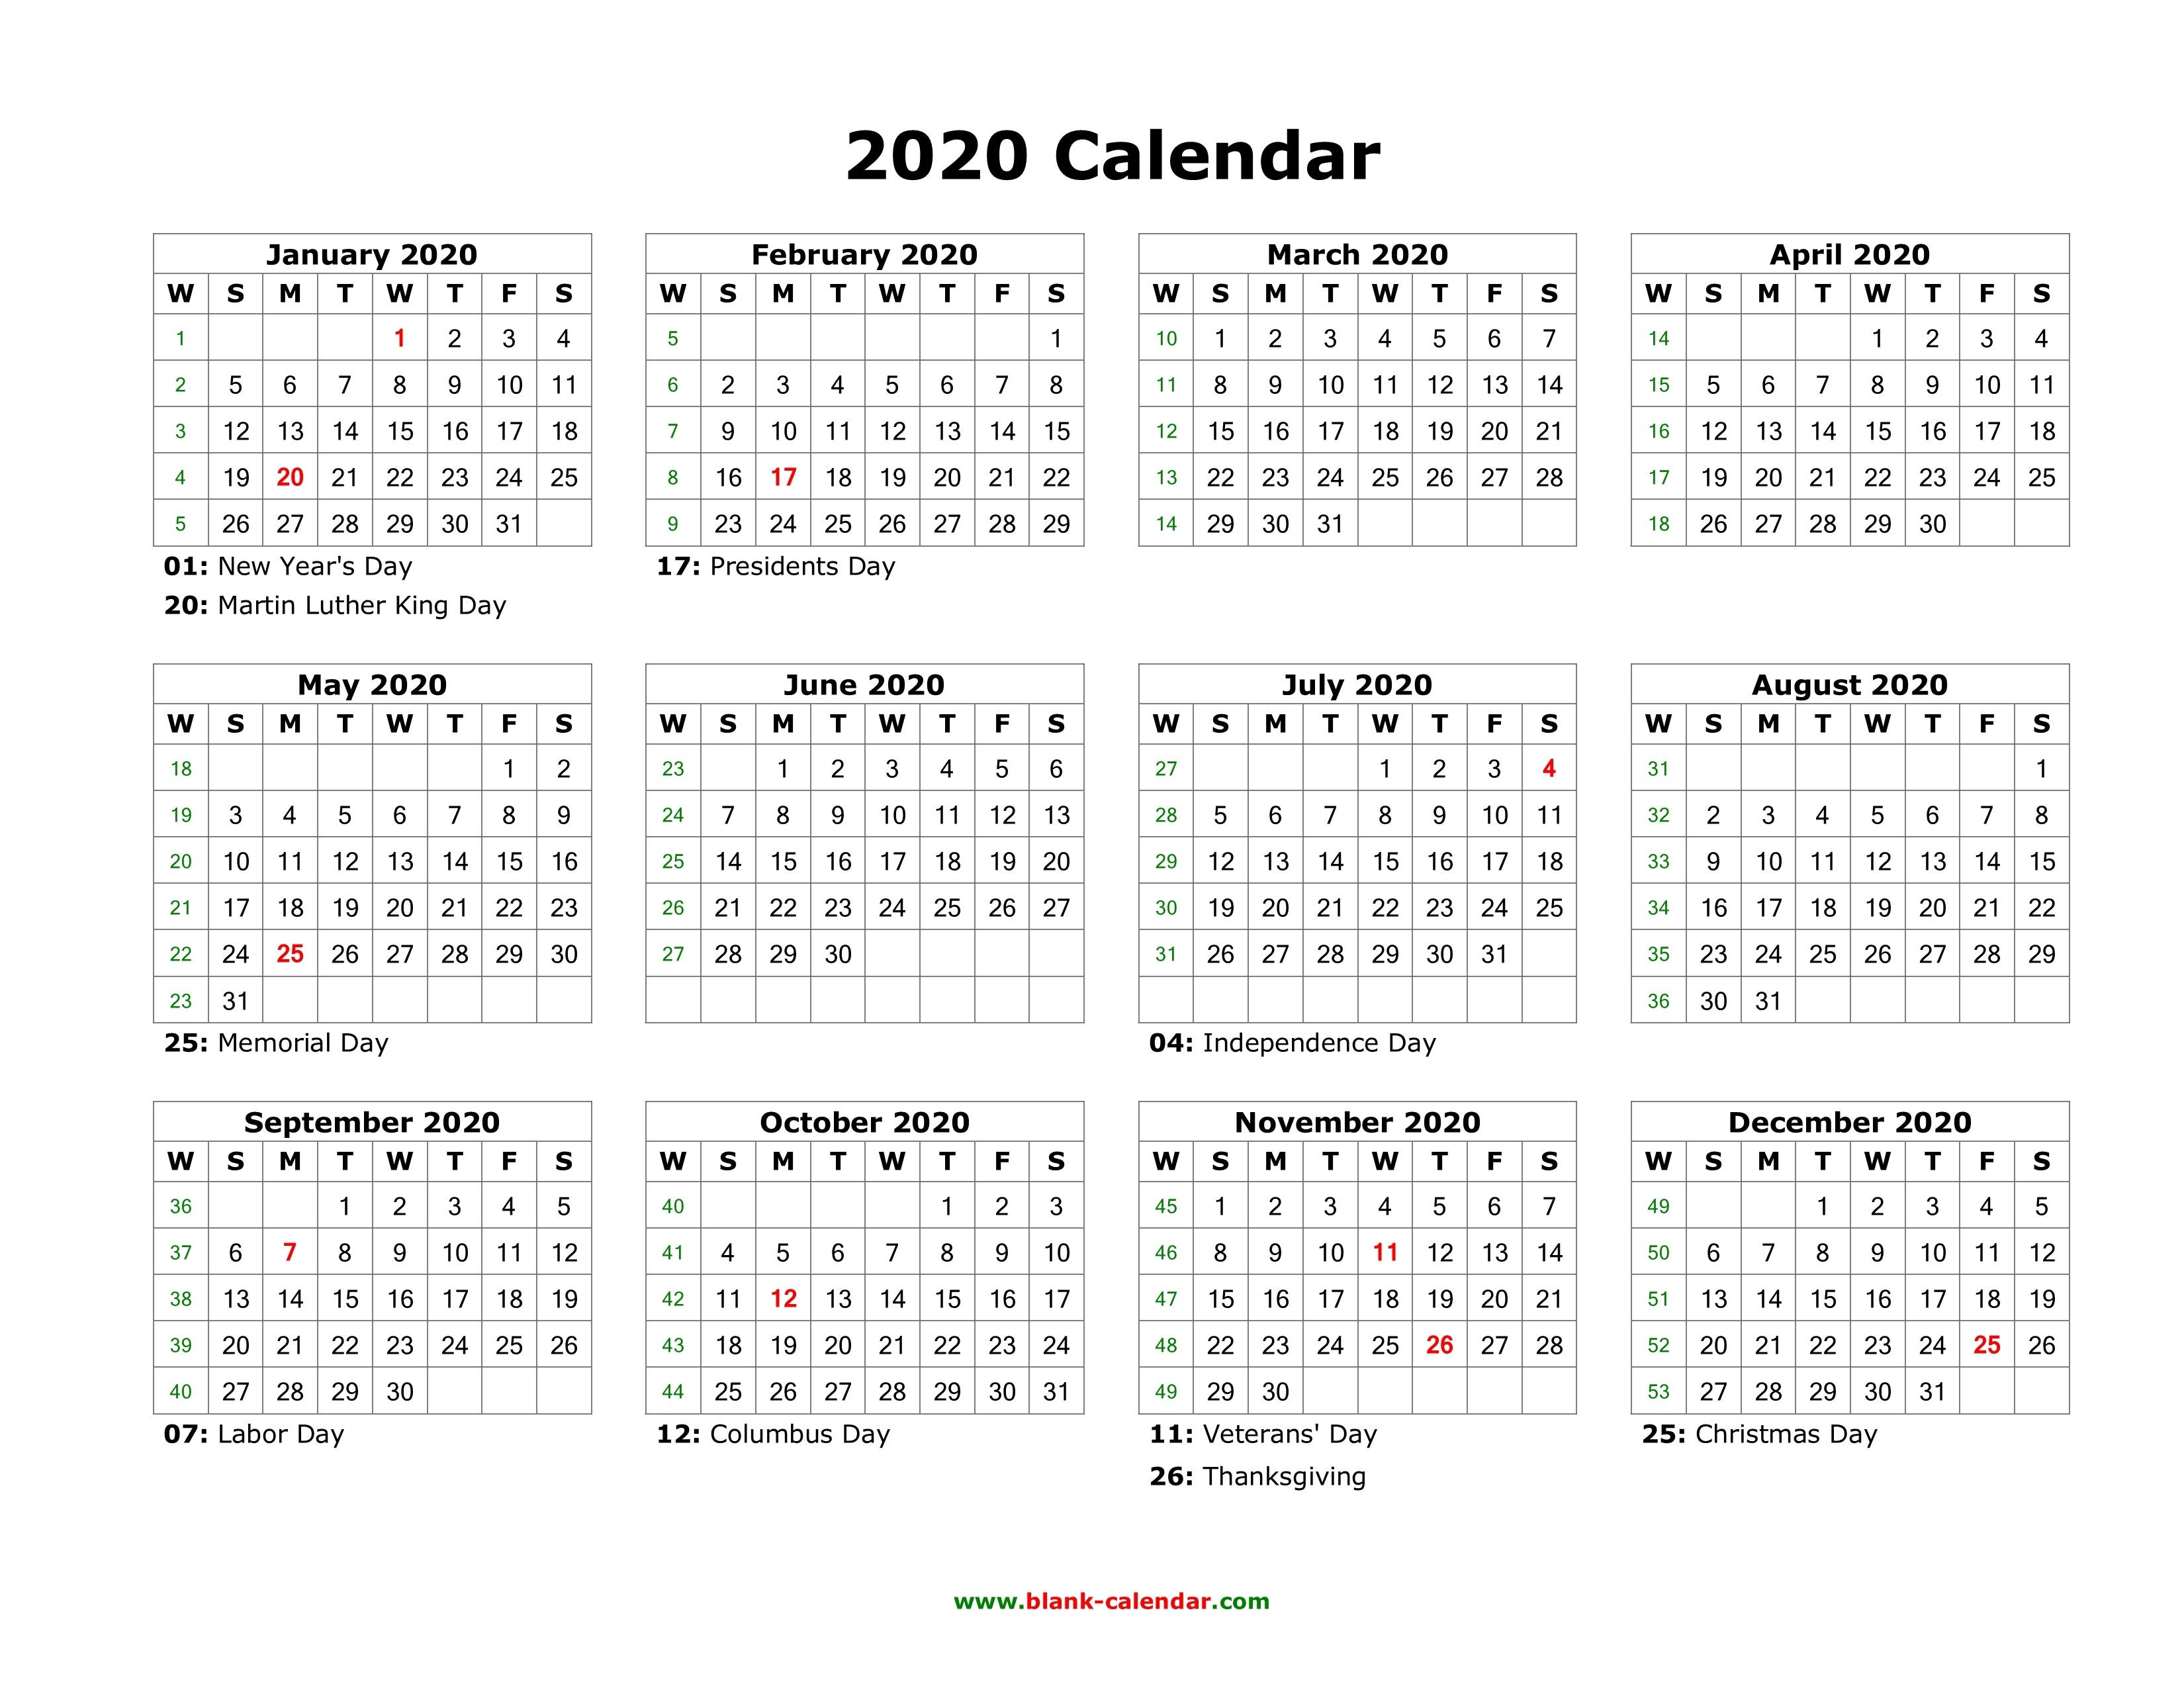 Blank Calendar 2020 | Free Download Calendar Templates-Adobe Indesign Calendar Template 2020